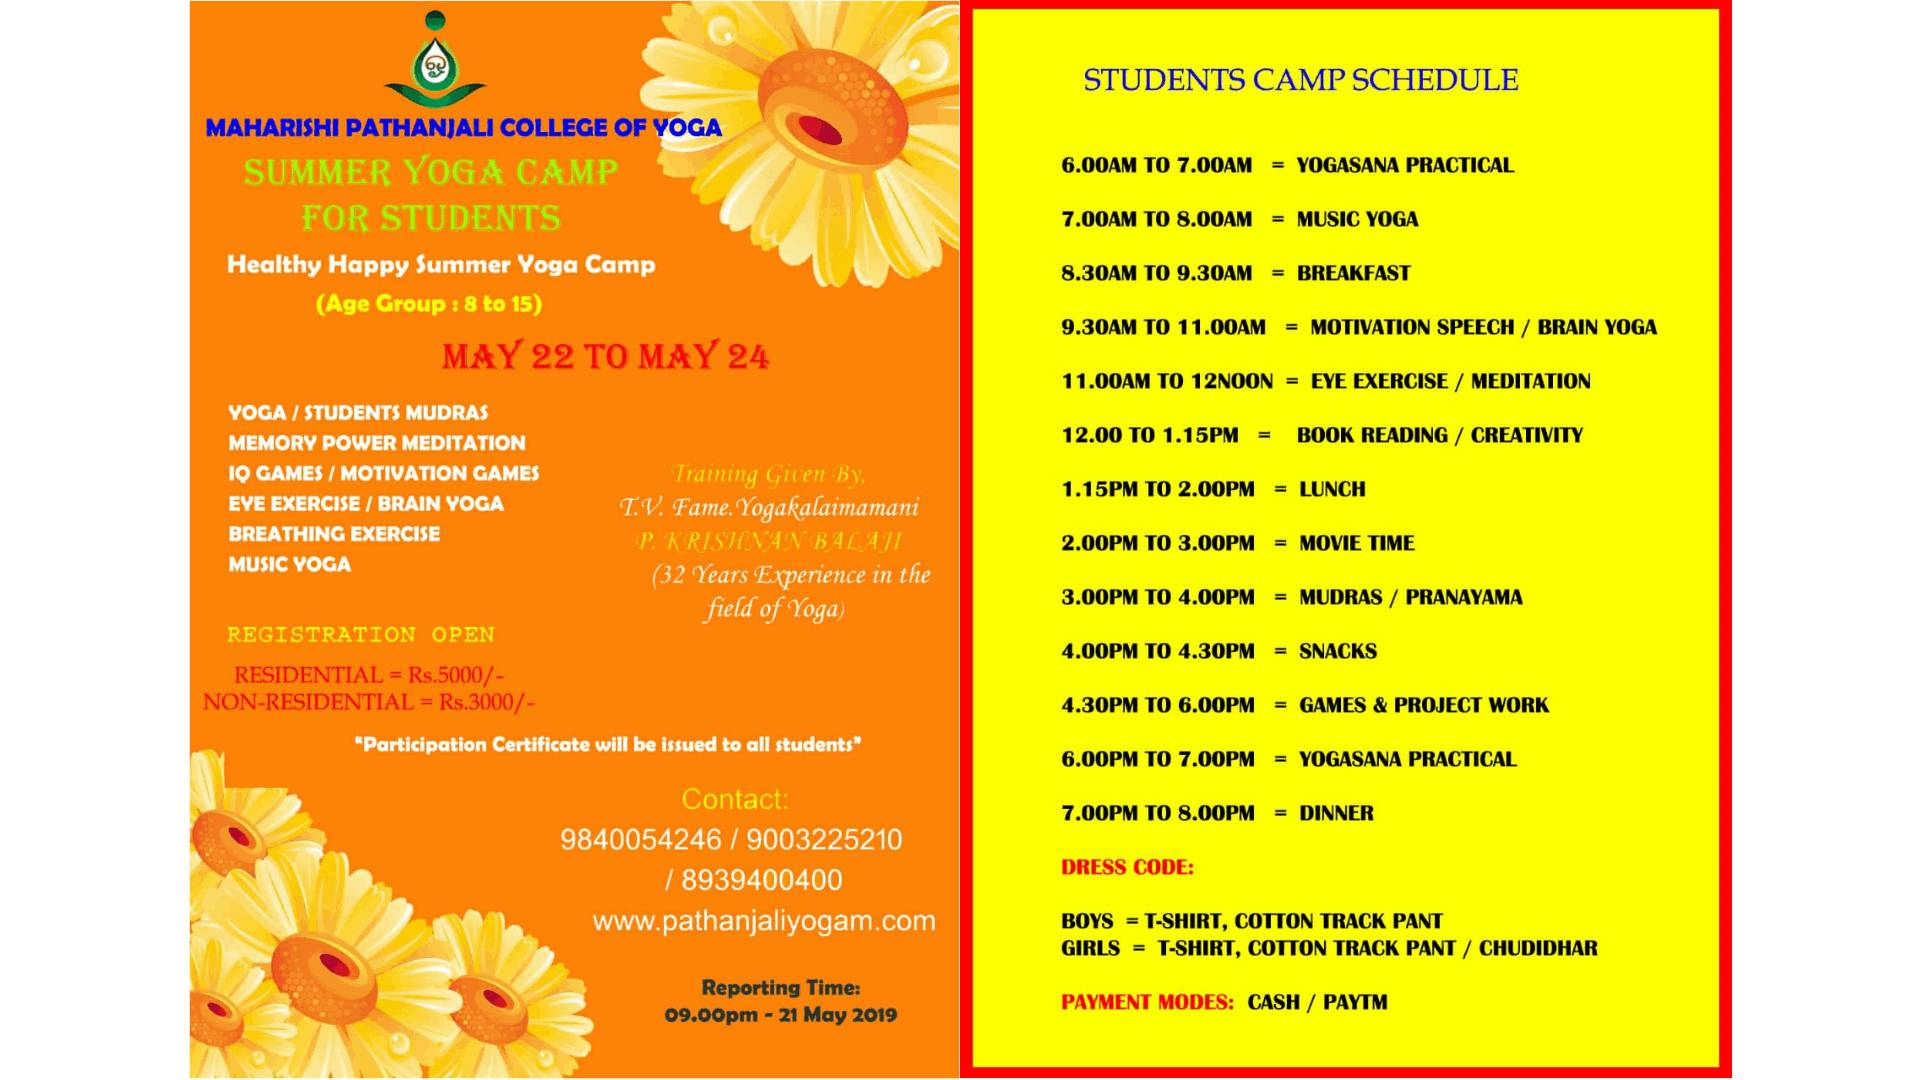 Summer Yoga Camp for Students